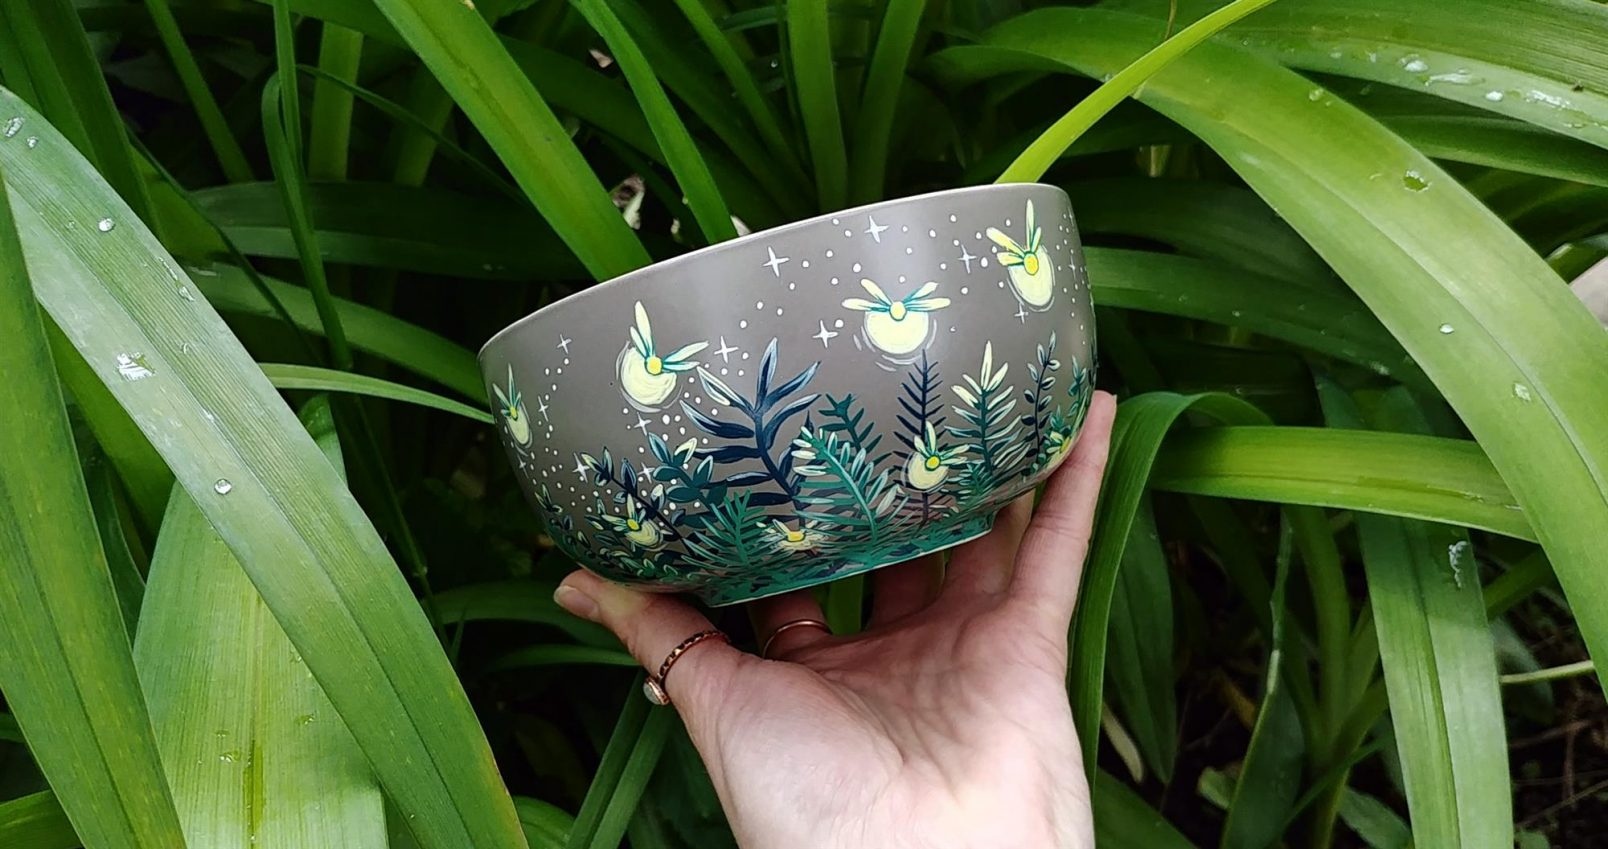 firefly bowl cereal hand painted handmade gifts meadow forest night sky stars moon ceramic mug cup unique gifts